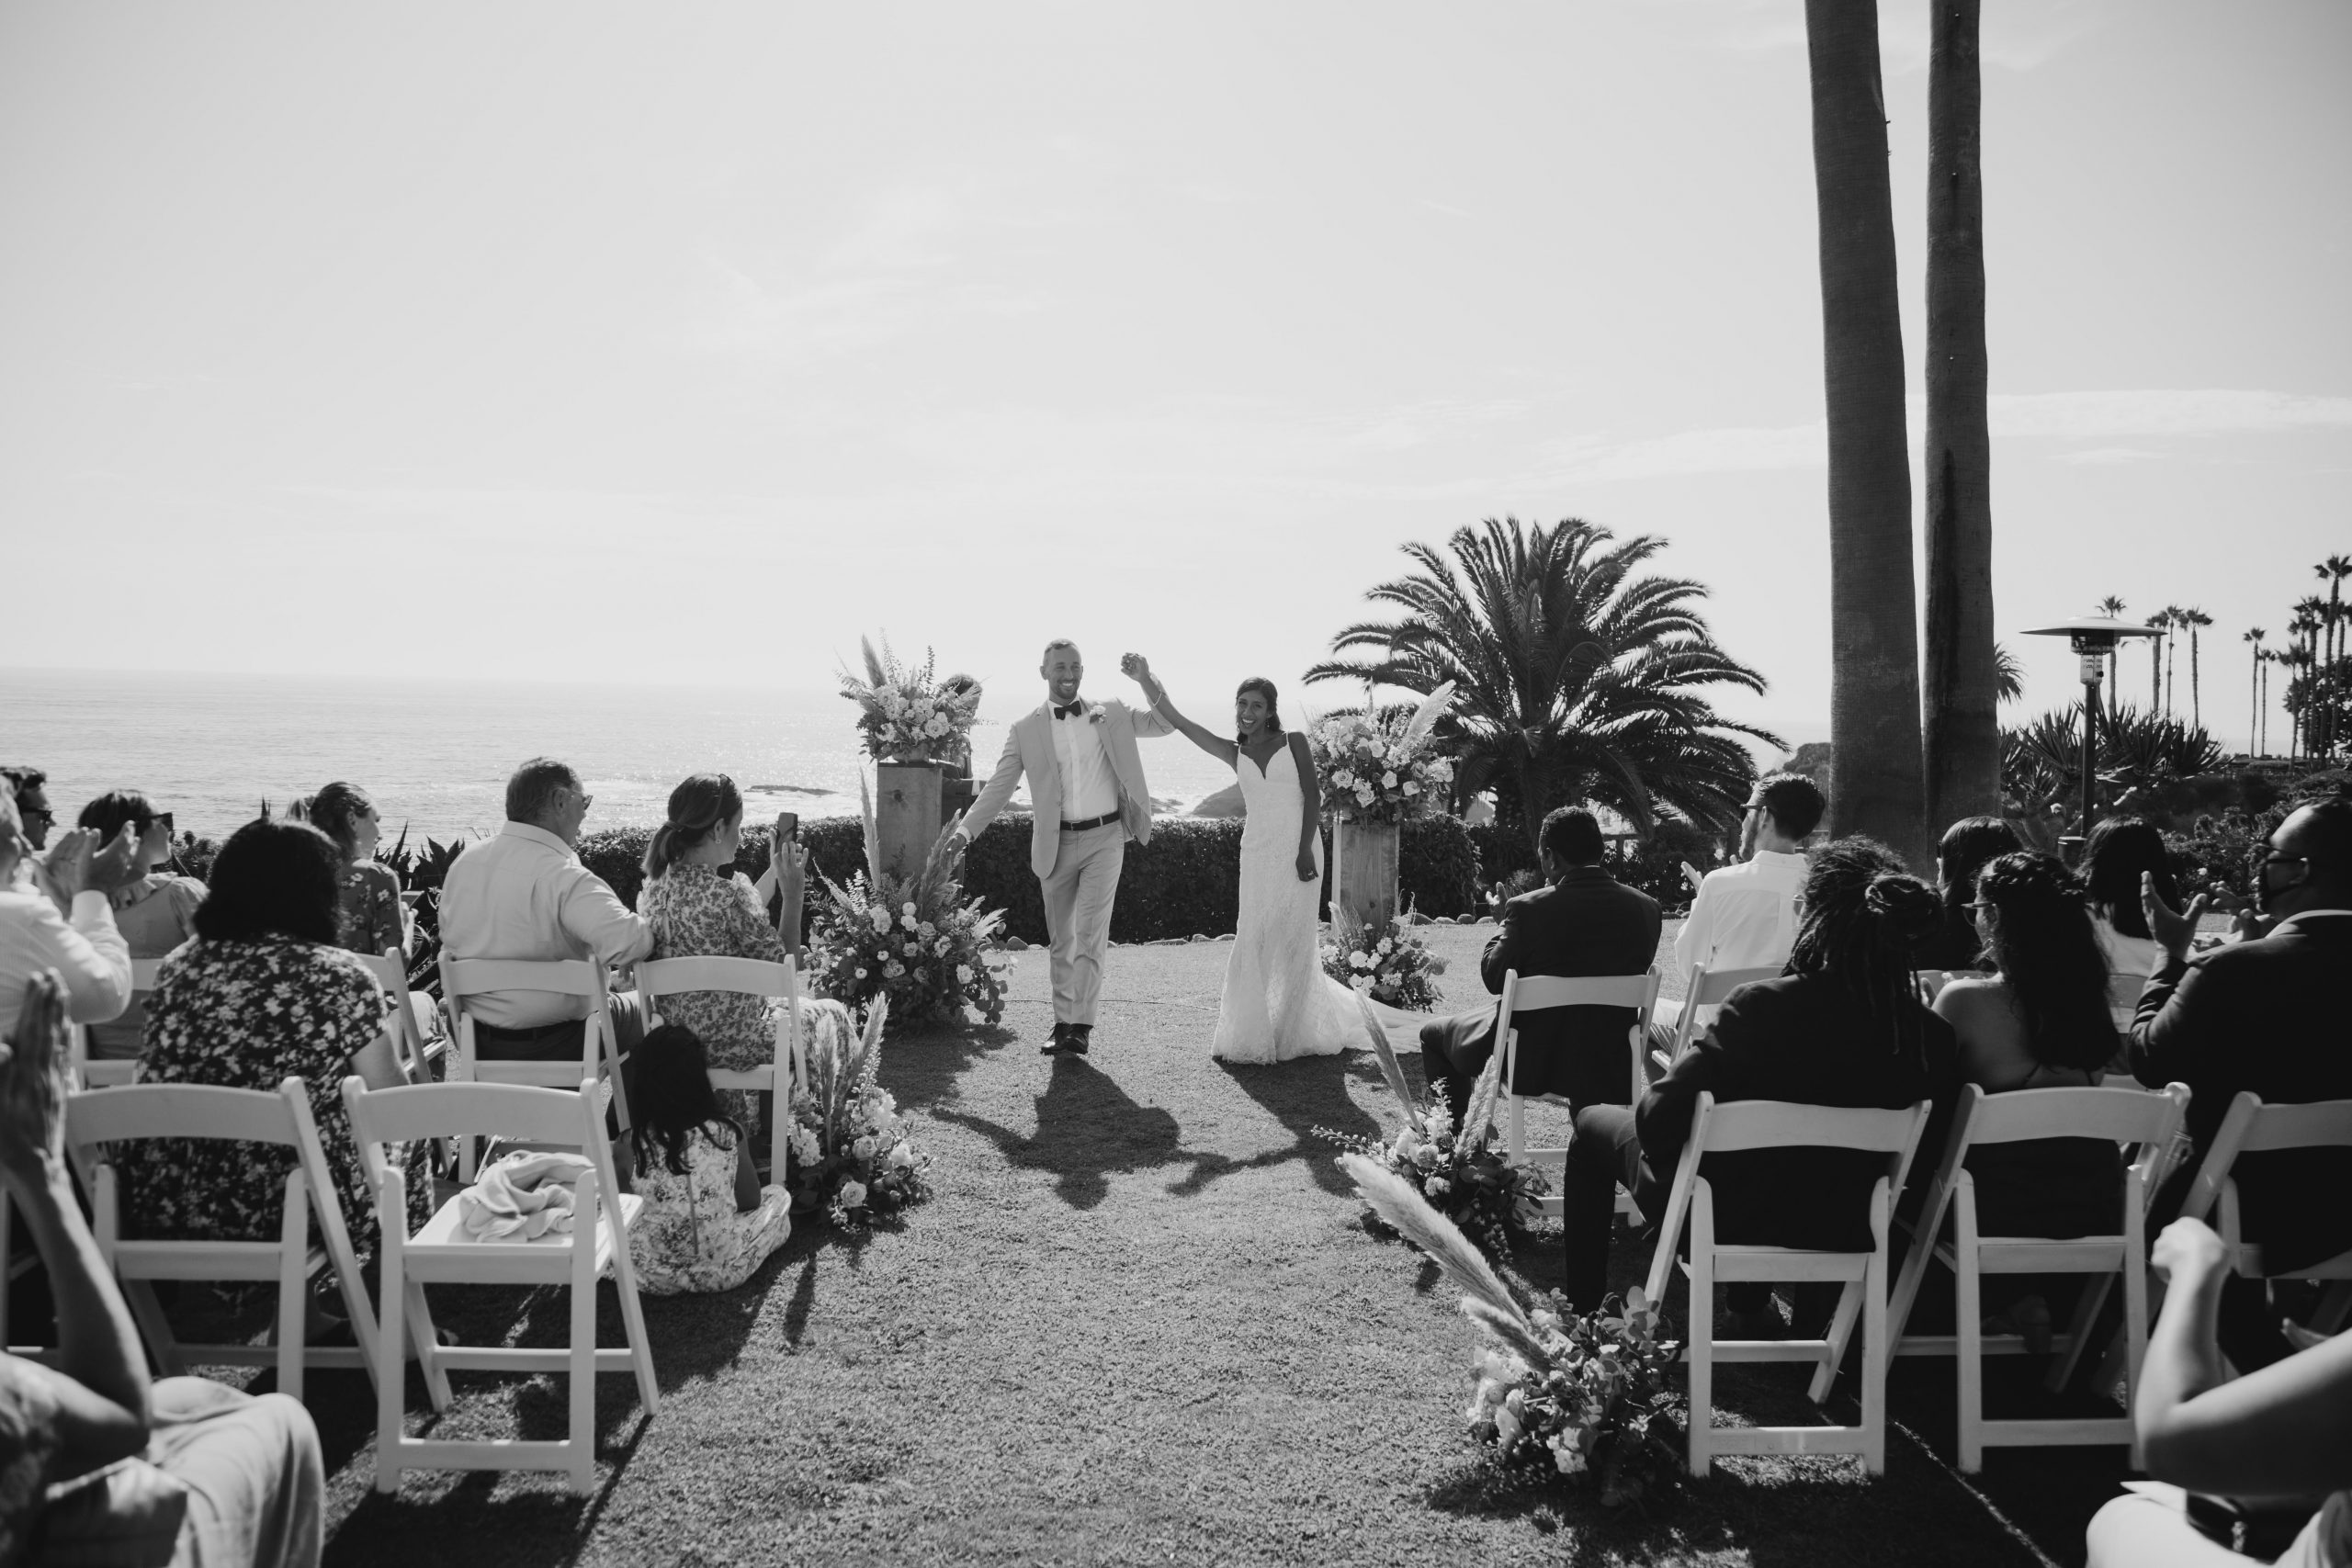 The Montage Laguna Beach Wedding, image by Fatima Elreda Photo